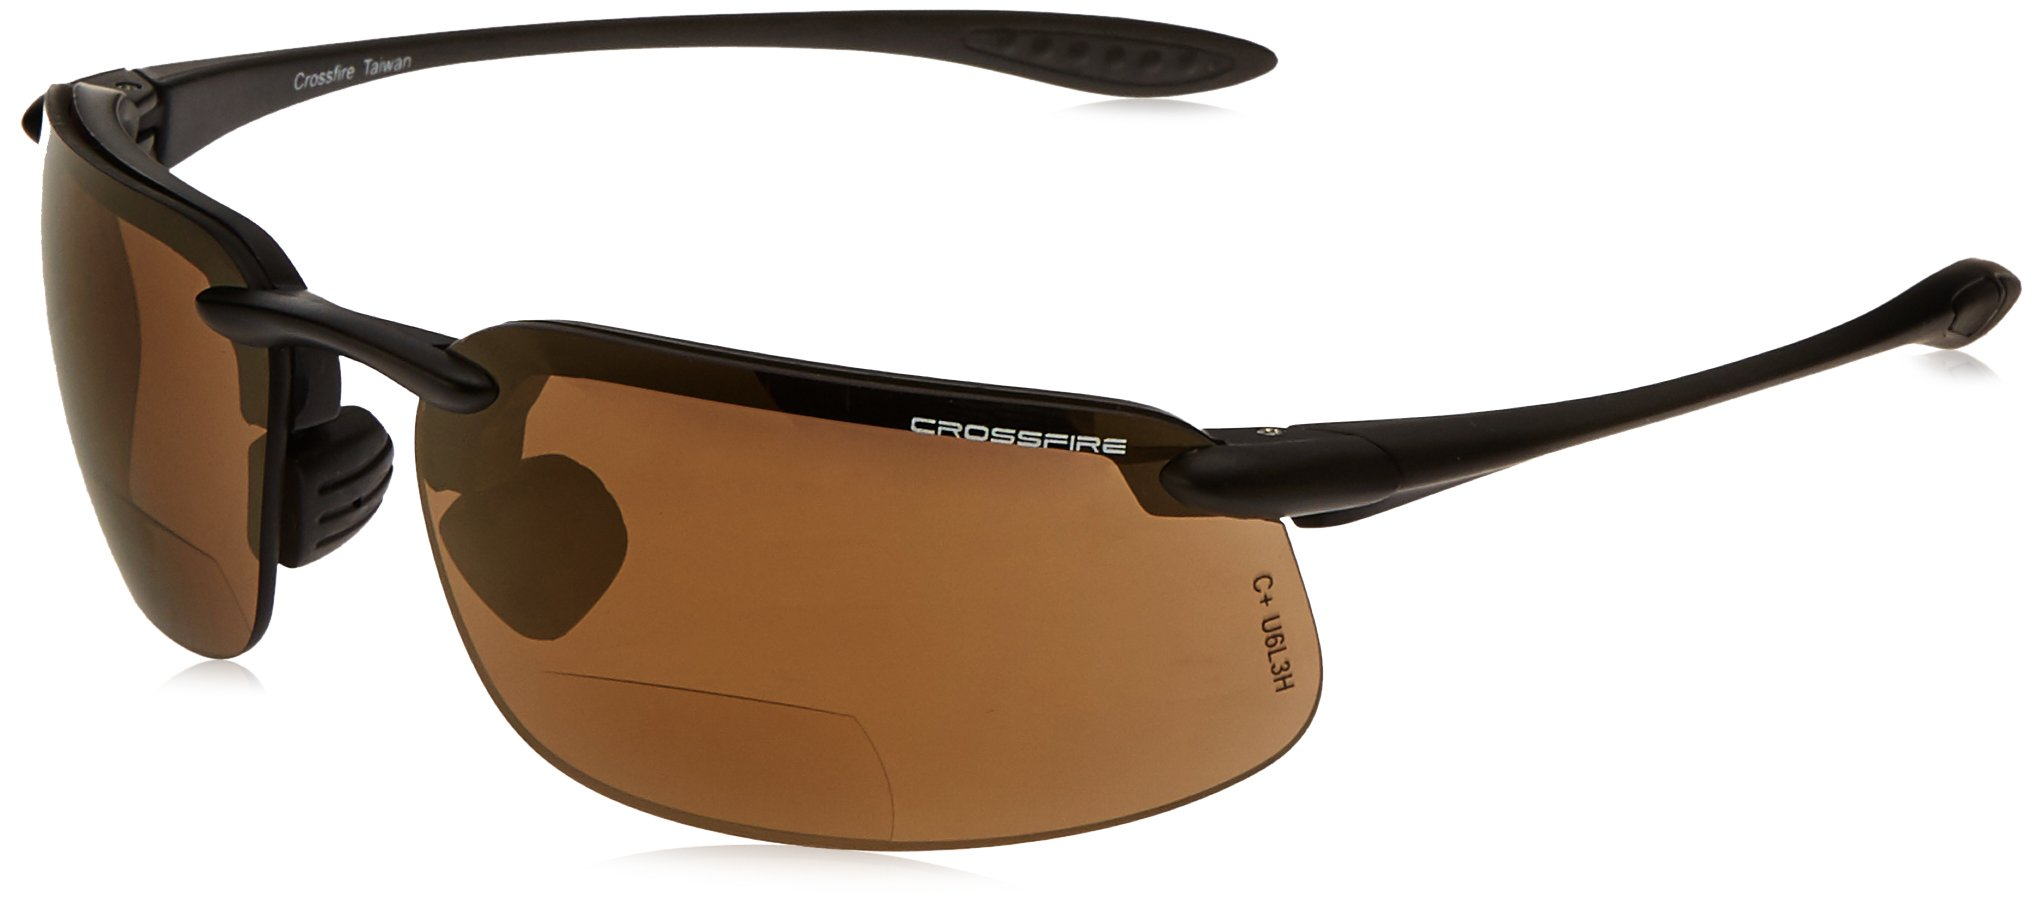 Crossfire Eyewear 216112 1.25 Diopter ES4 Safety Glasses with Black Frame and Bronze Lens